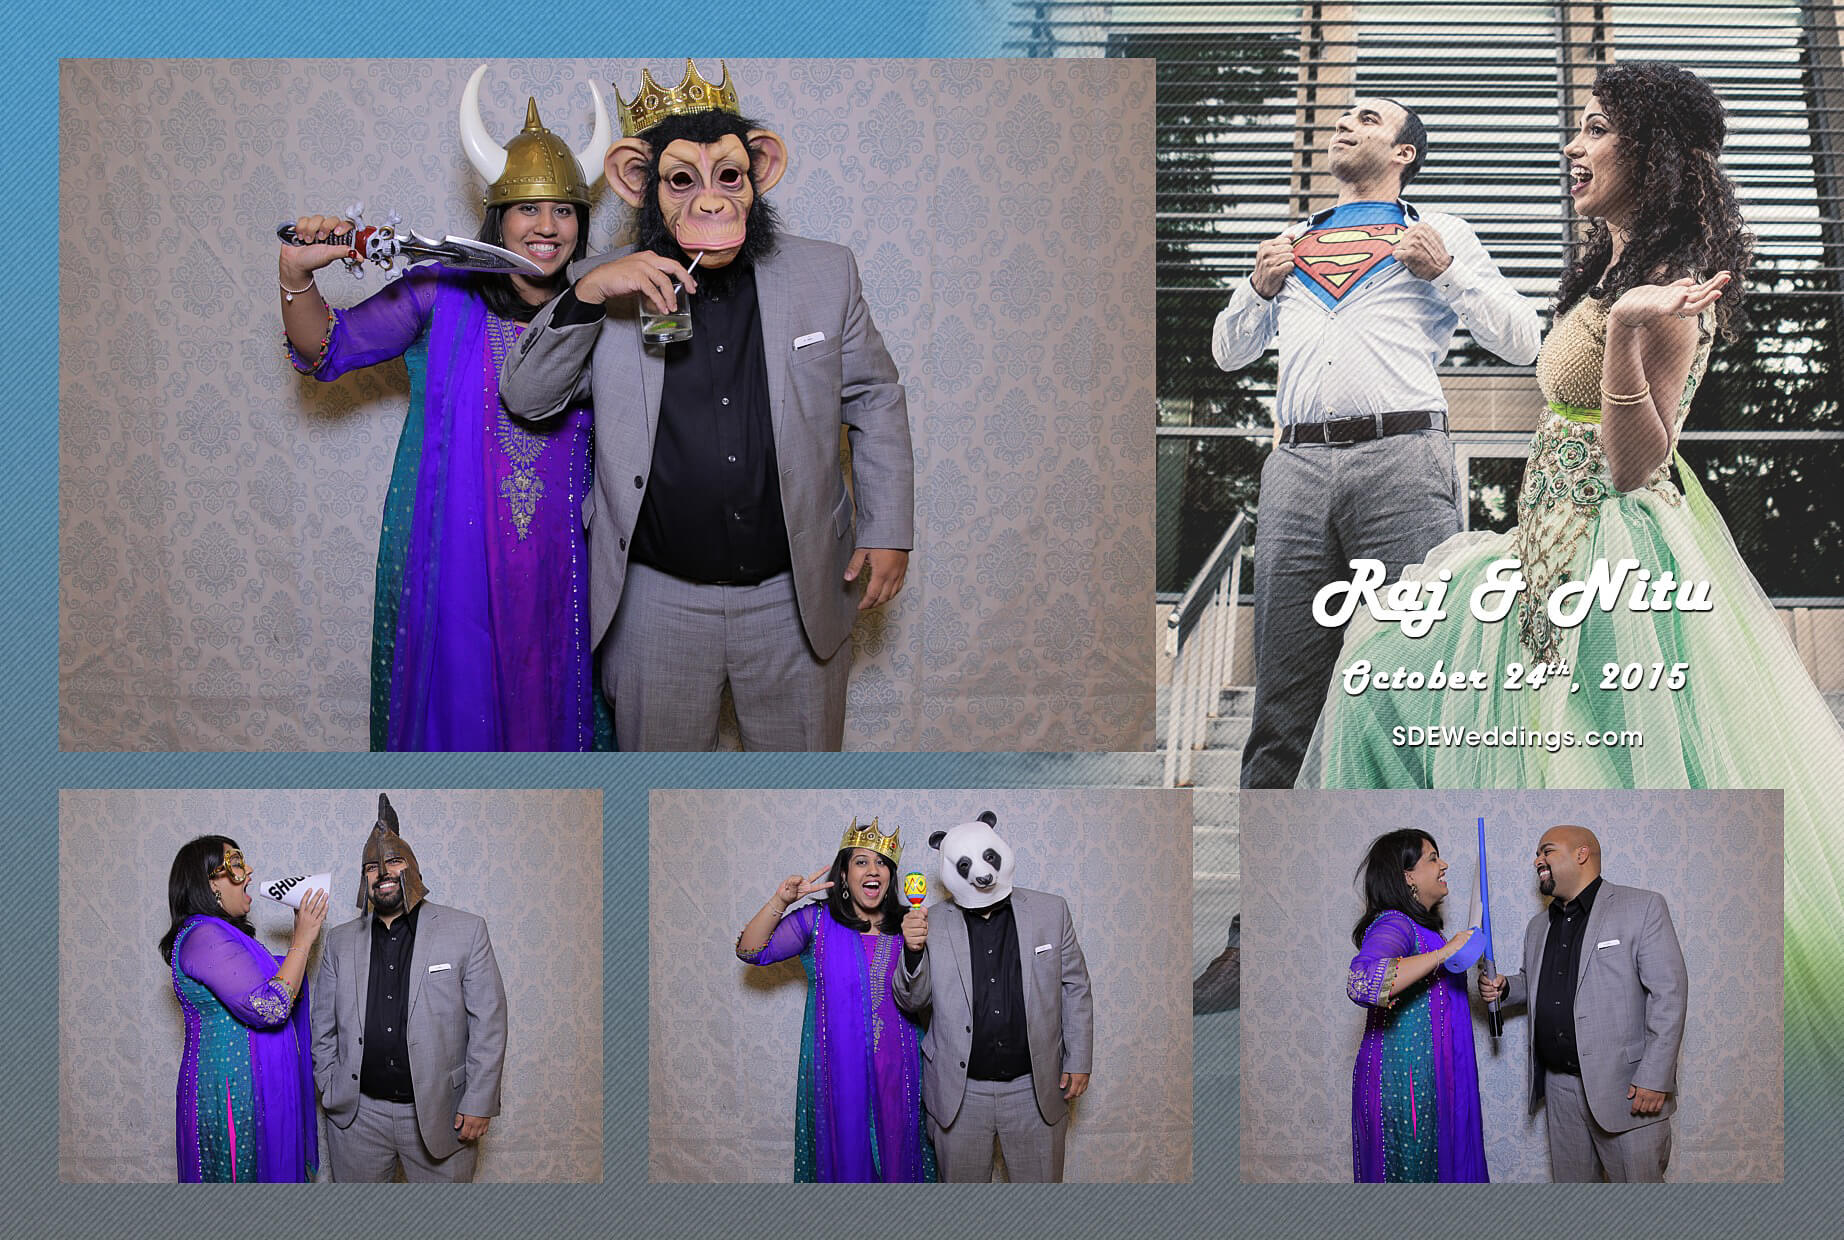 Brampton Wedding Photo Booth Rental 7